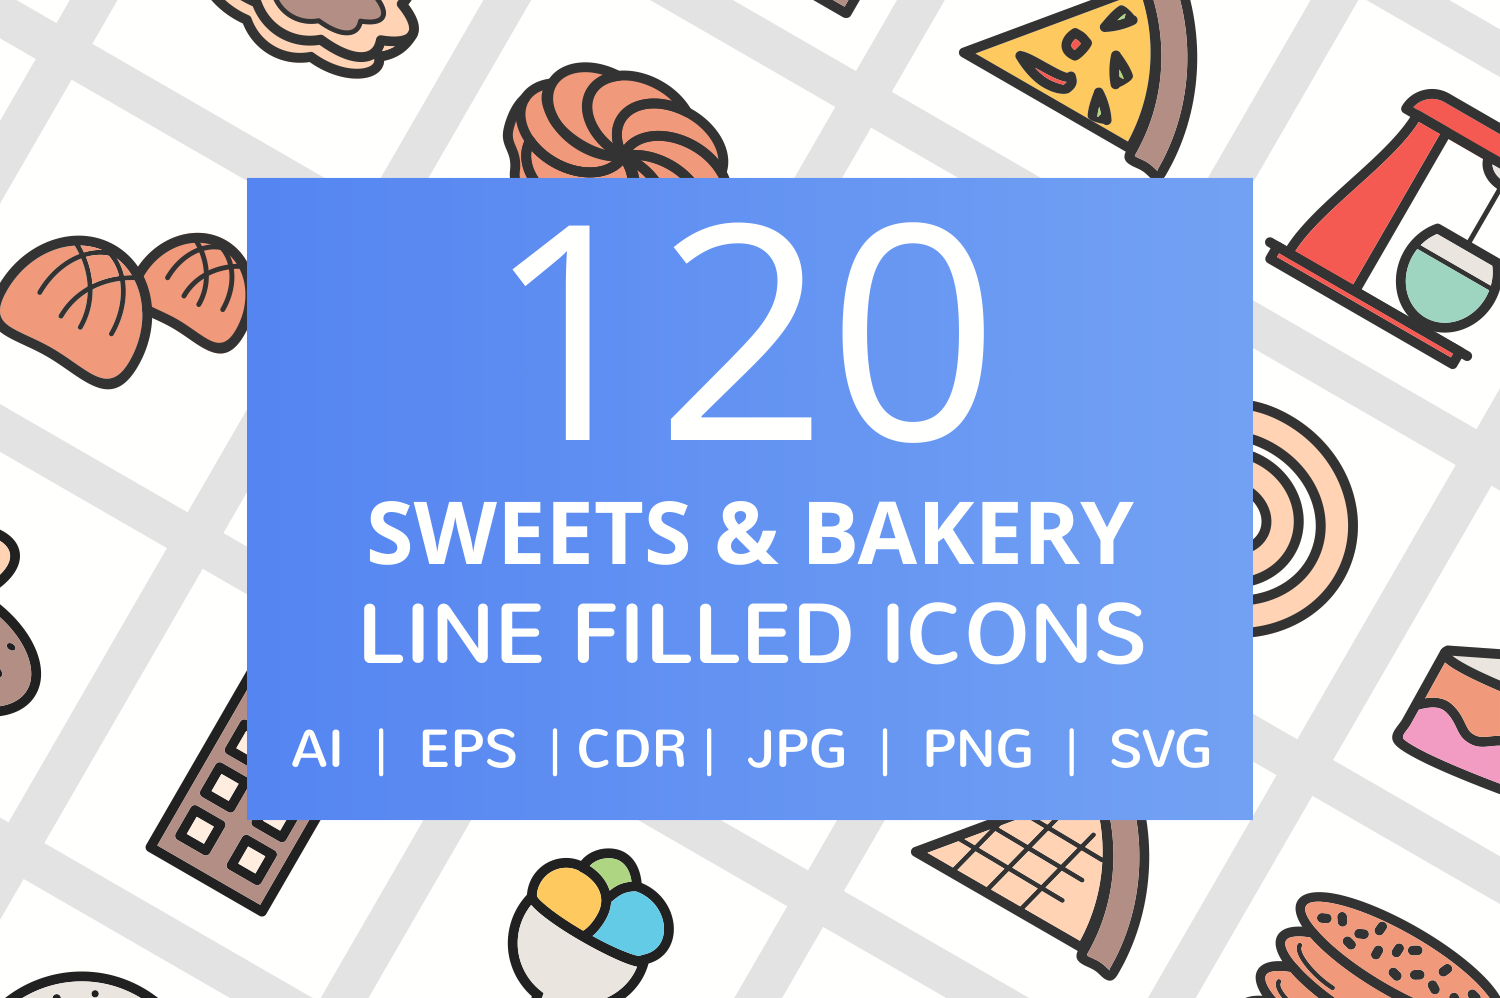 120 Sweets & Bakery Filled Line Icons example image 1